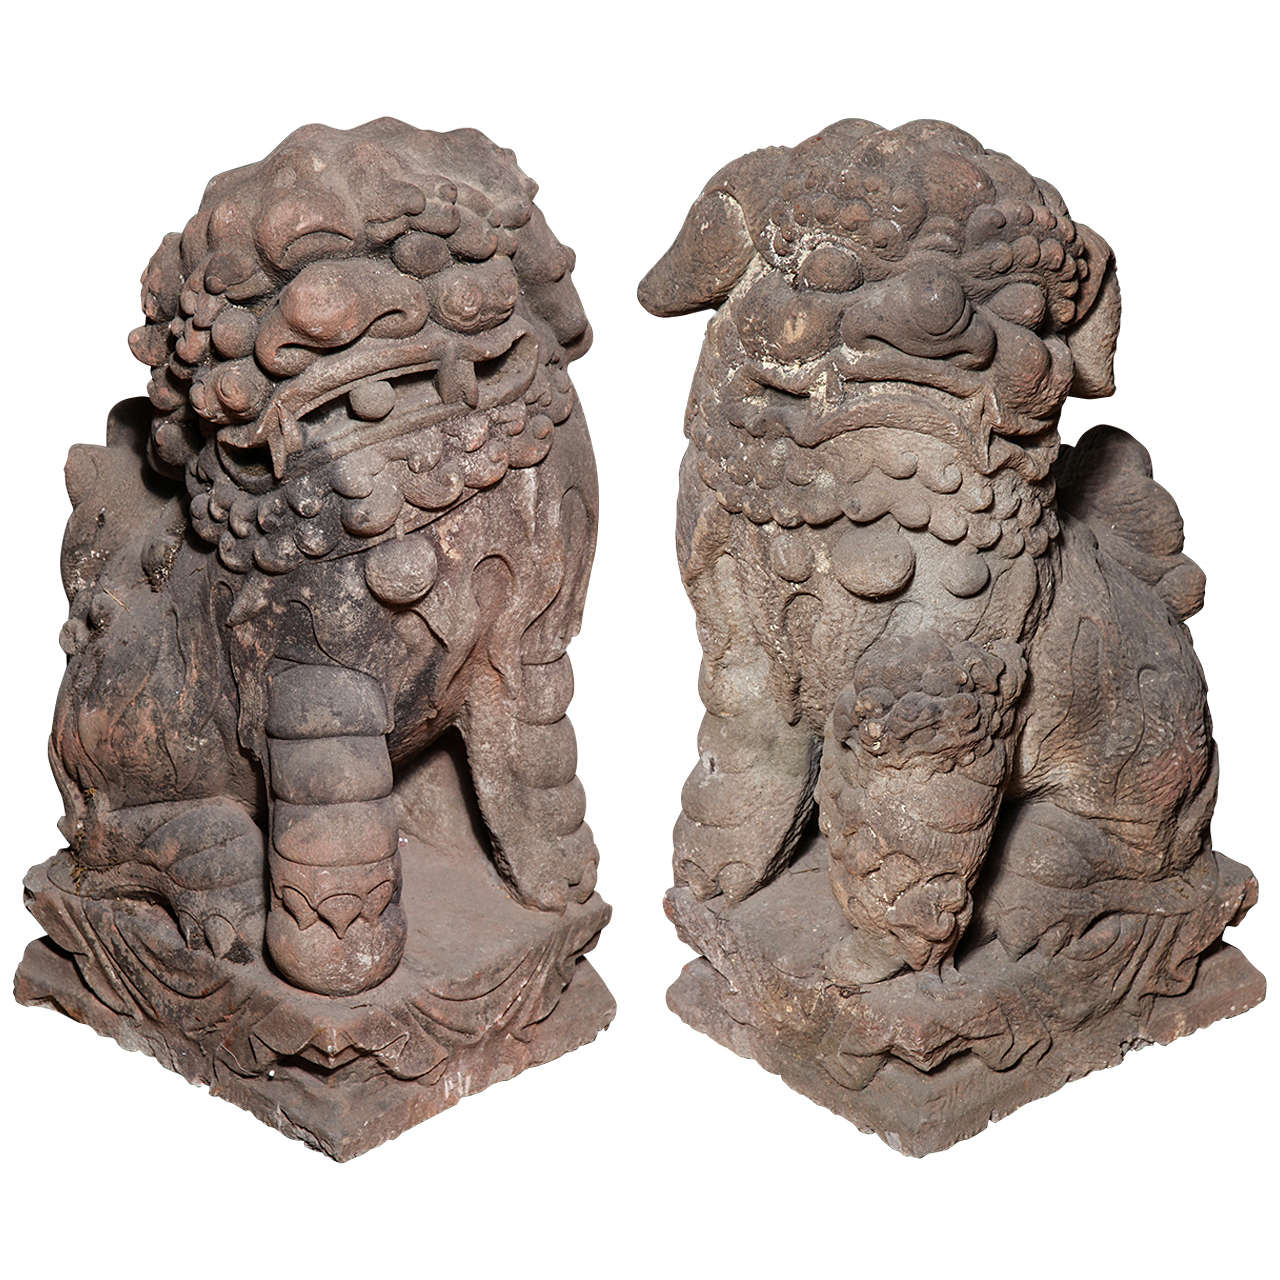 Late Ming Dynasty Antique Stone Lions from China, circa 16th-17th Century